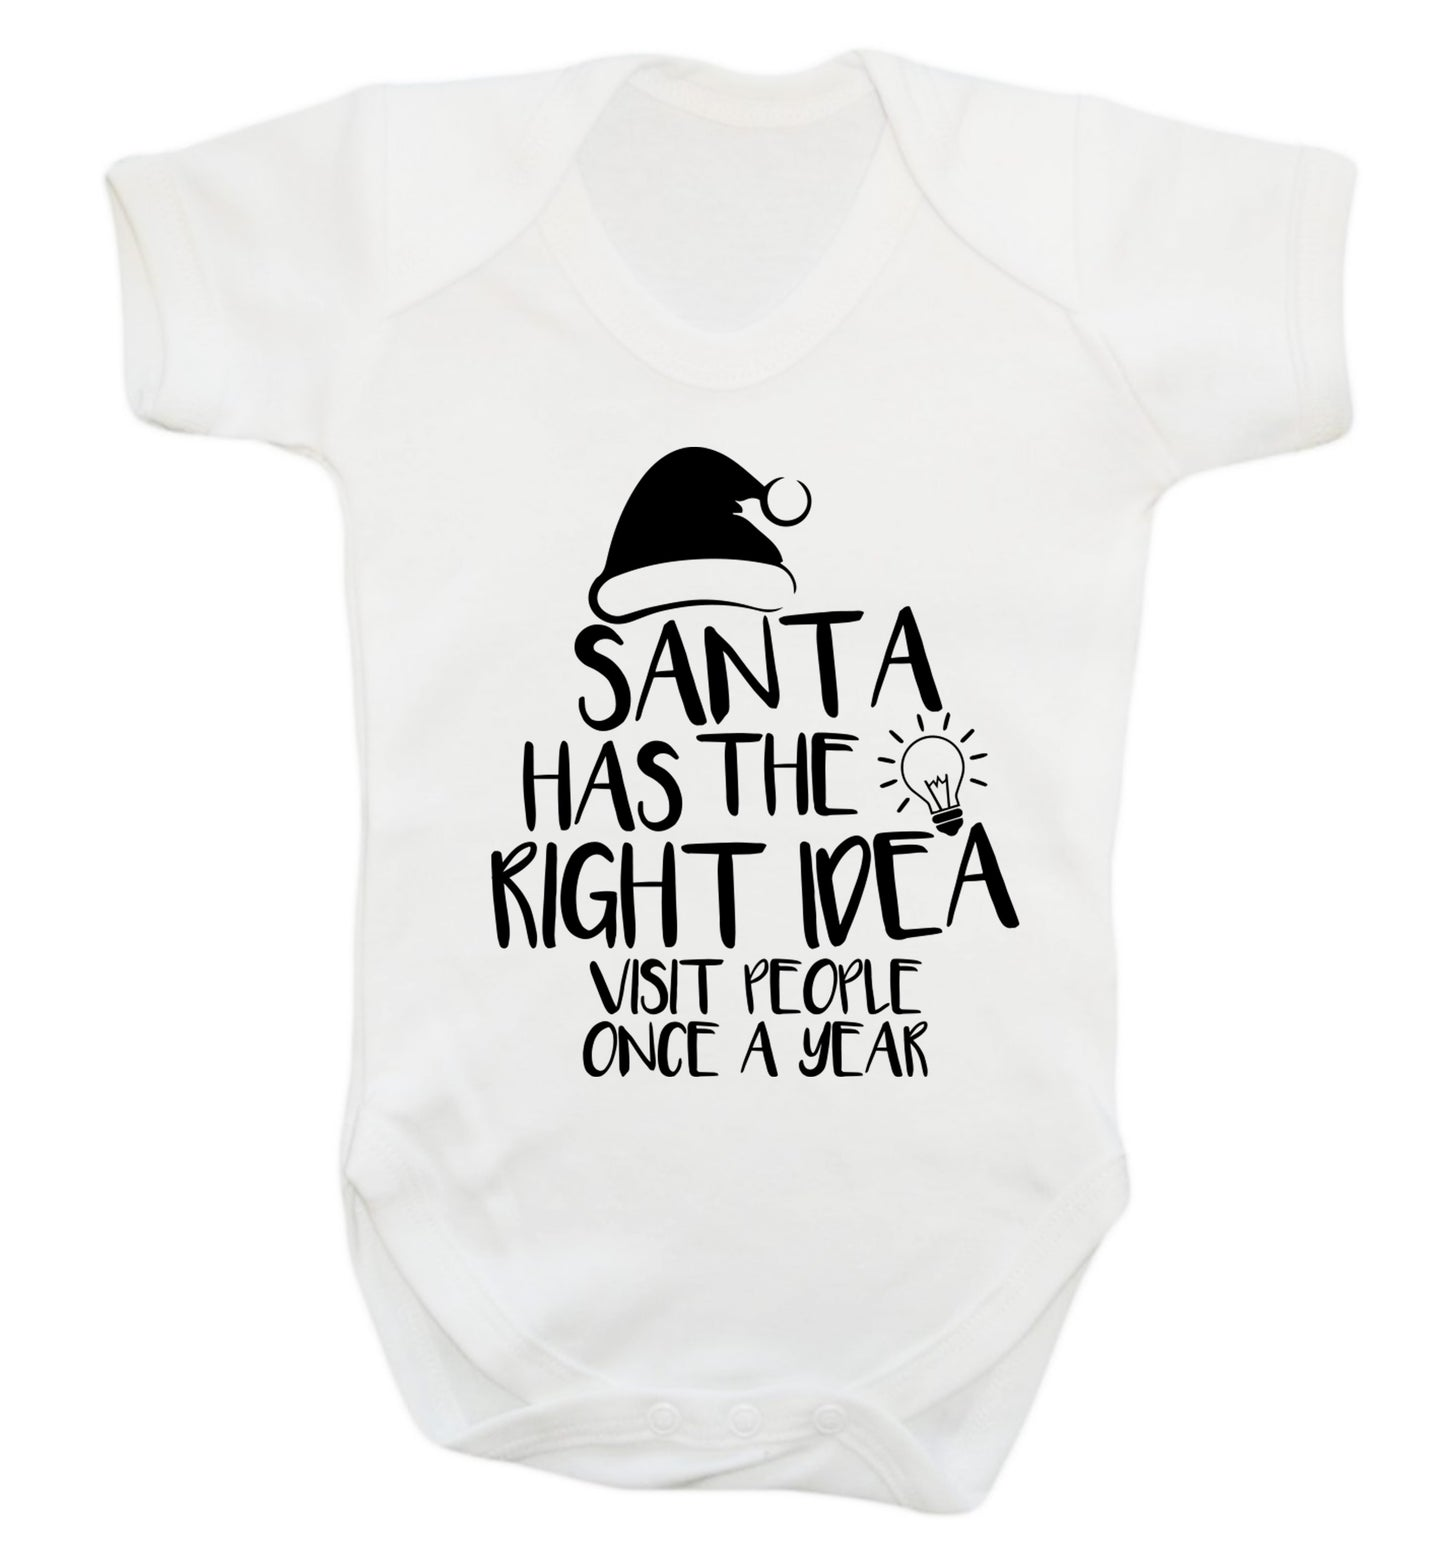 Santa has the right idea visit people once a year Baby Vest white 18-24 months